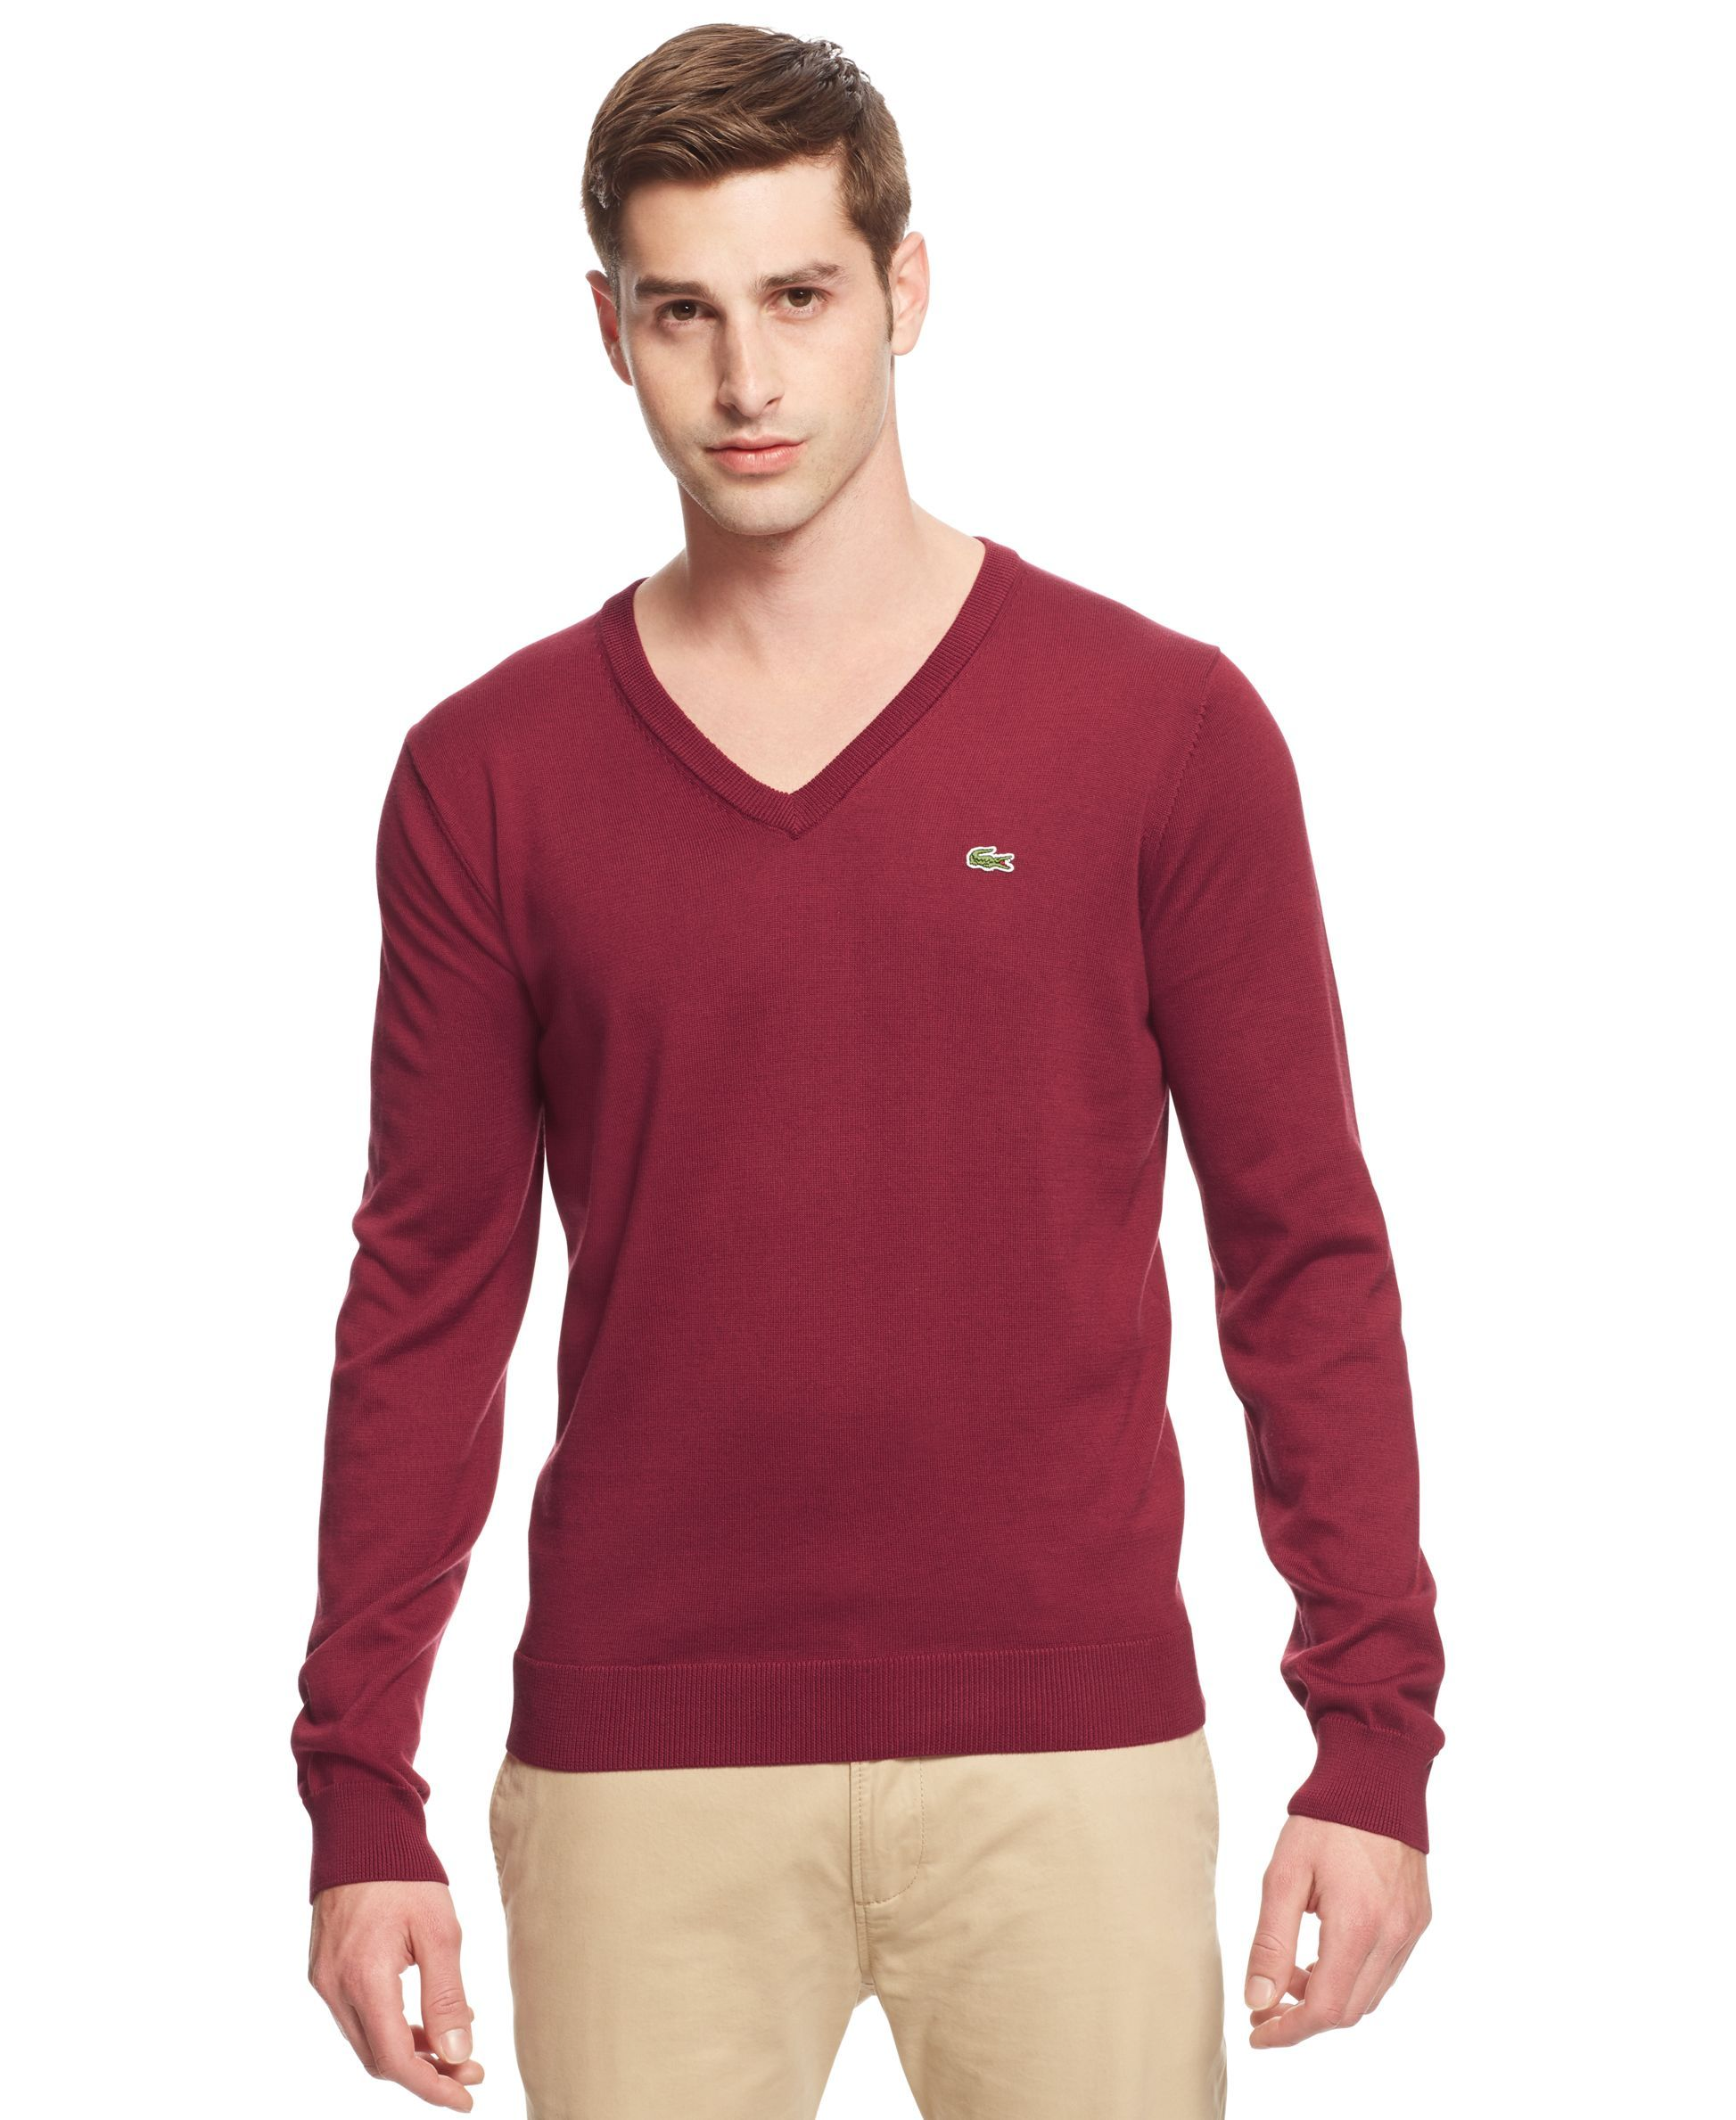 19de948038 Lacoste Big and Tall Solid V-Neck Jersey Sweater | Products | Men ...